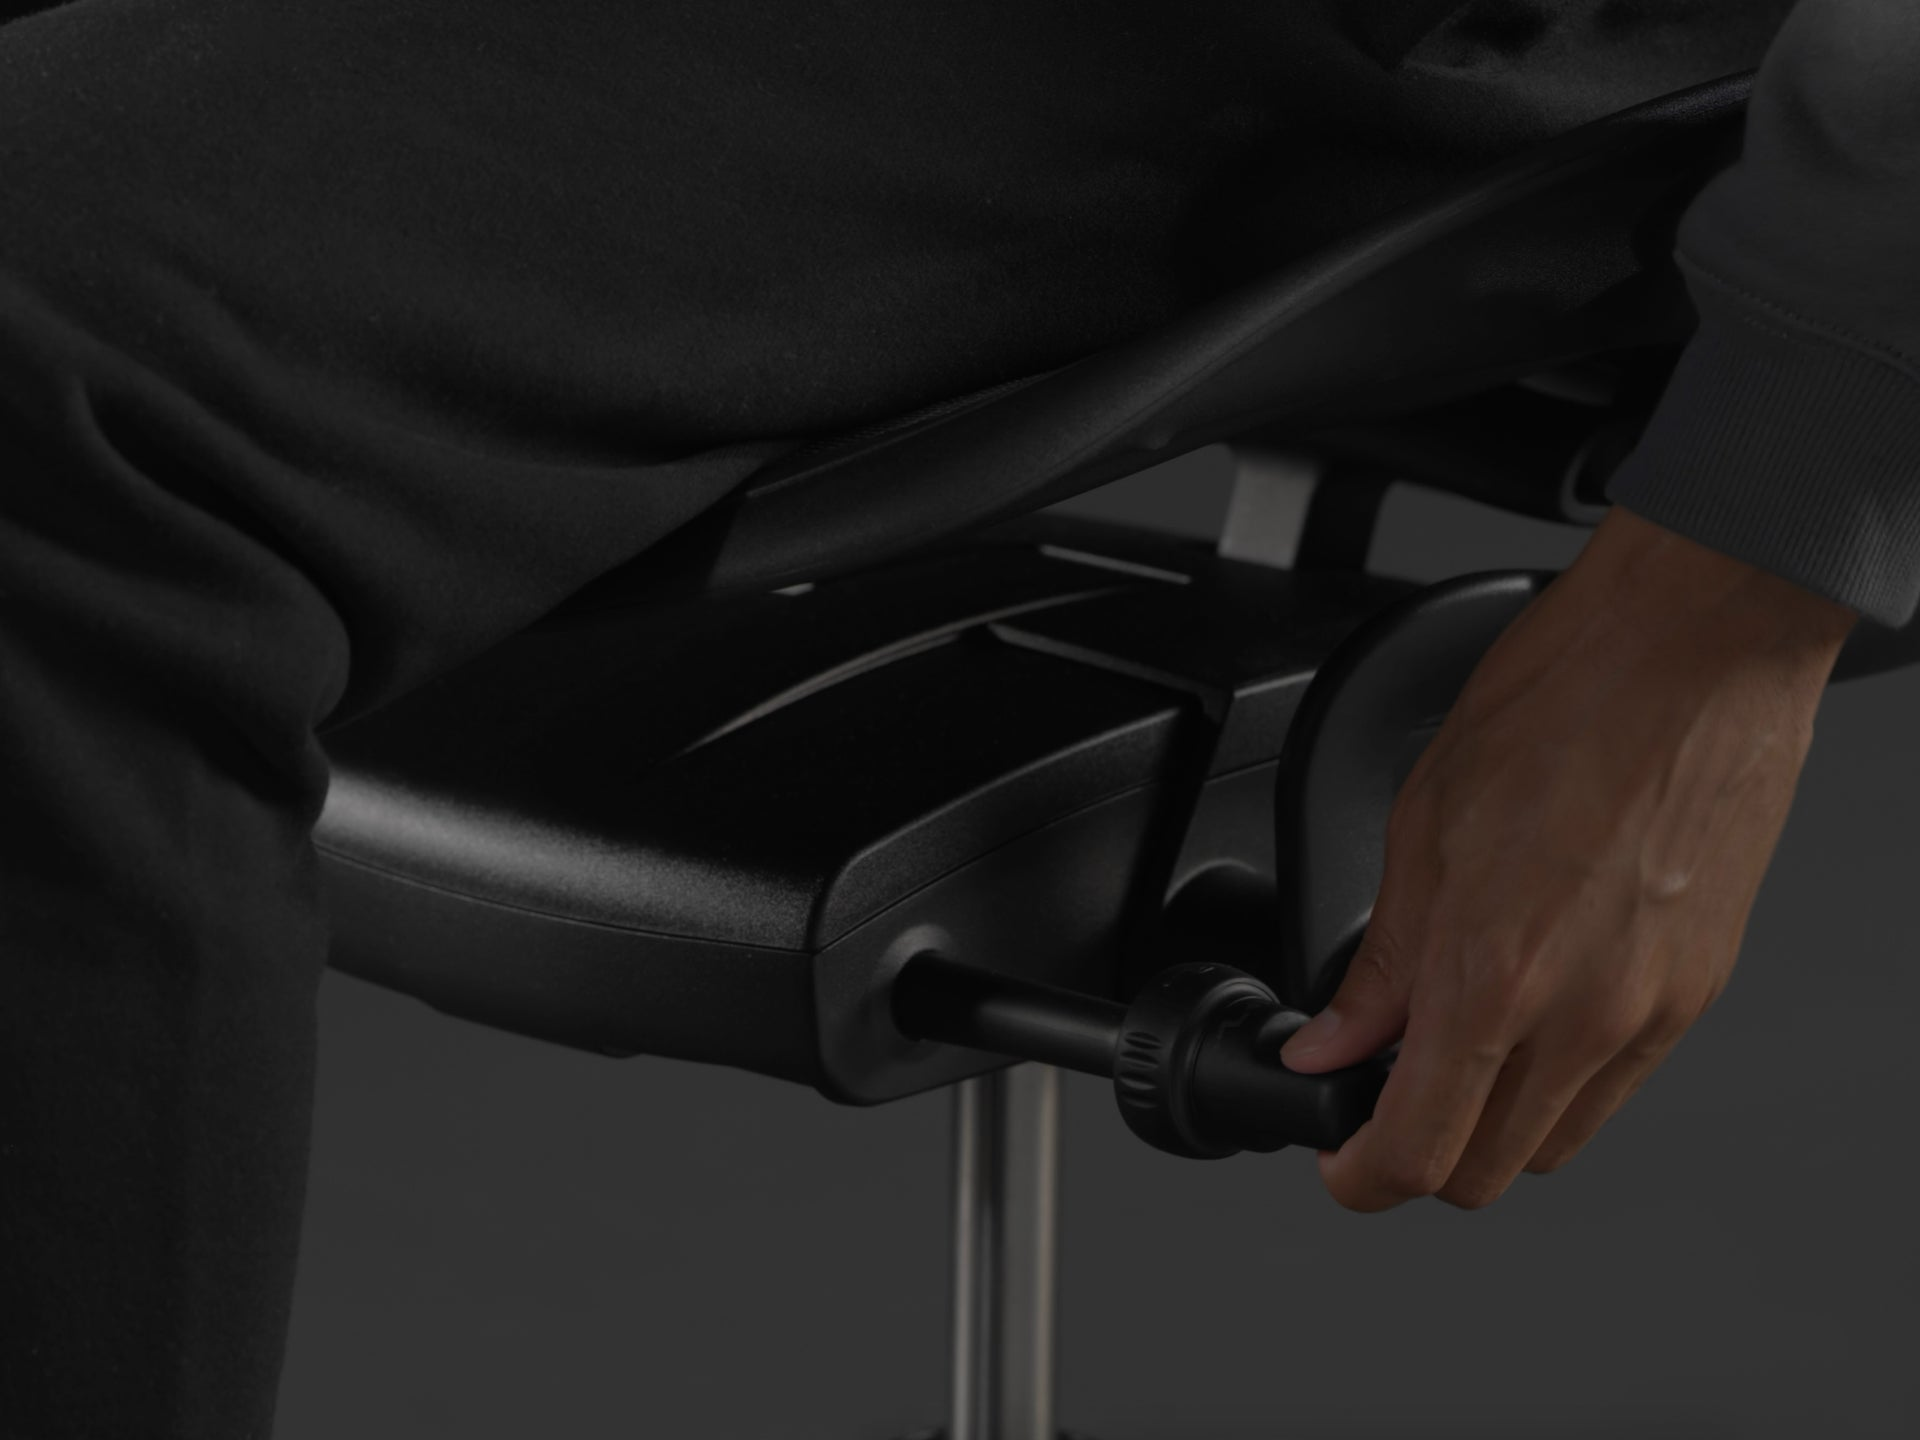 A close-up image of the side of the Embody Gaming Chair with a person adjusting seat height mechanism.